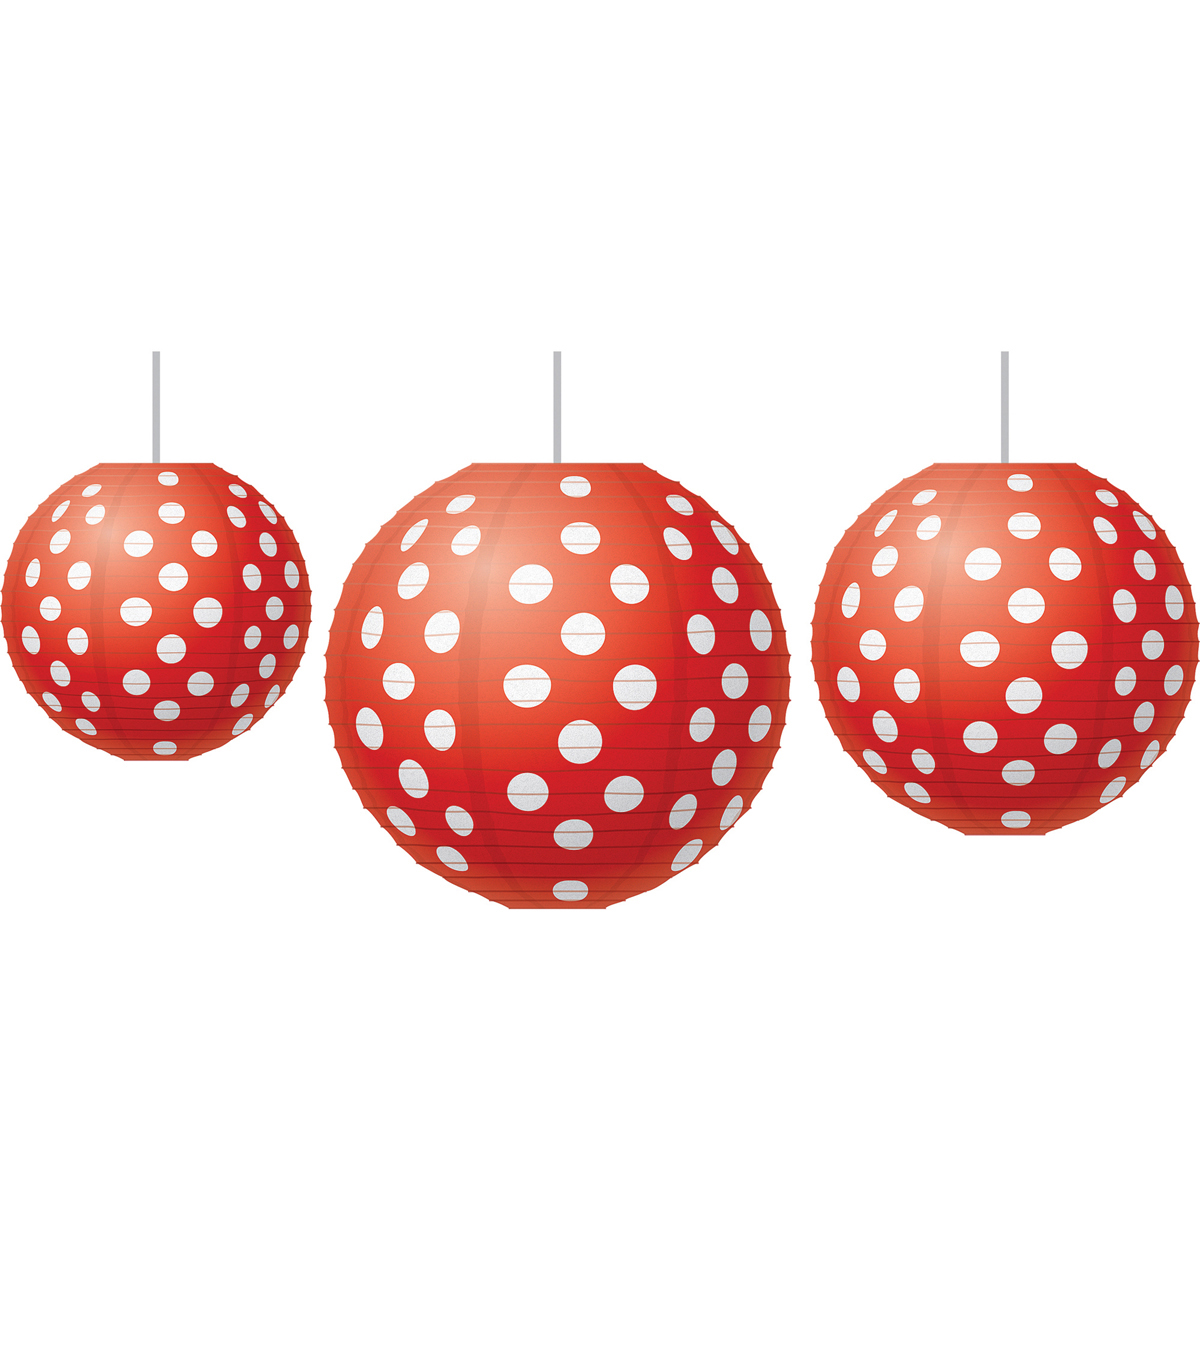 Red Polka Dots Paper Lanterns, 3 Per Set, 3 Sets